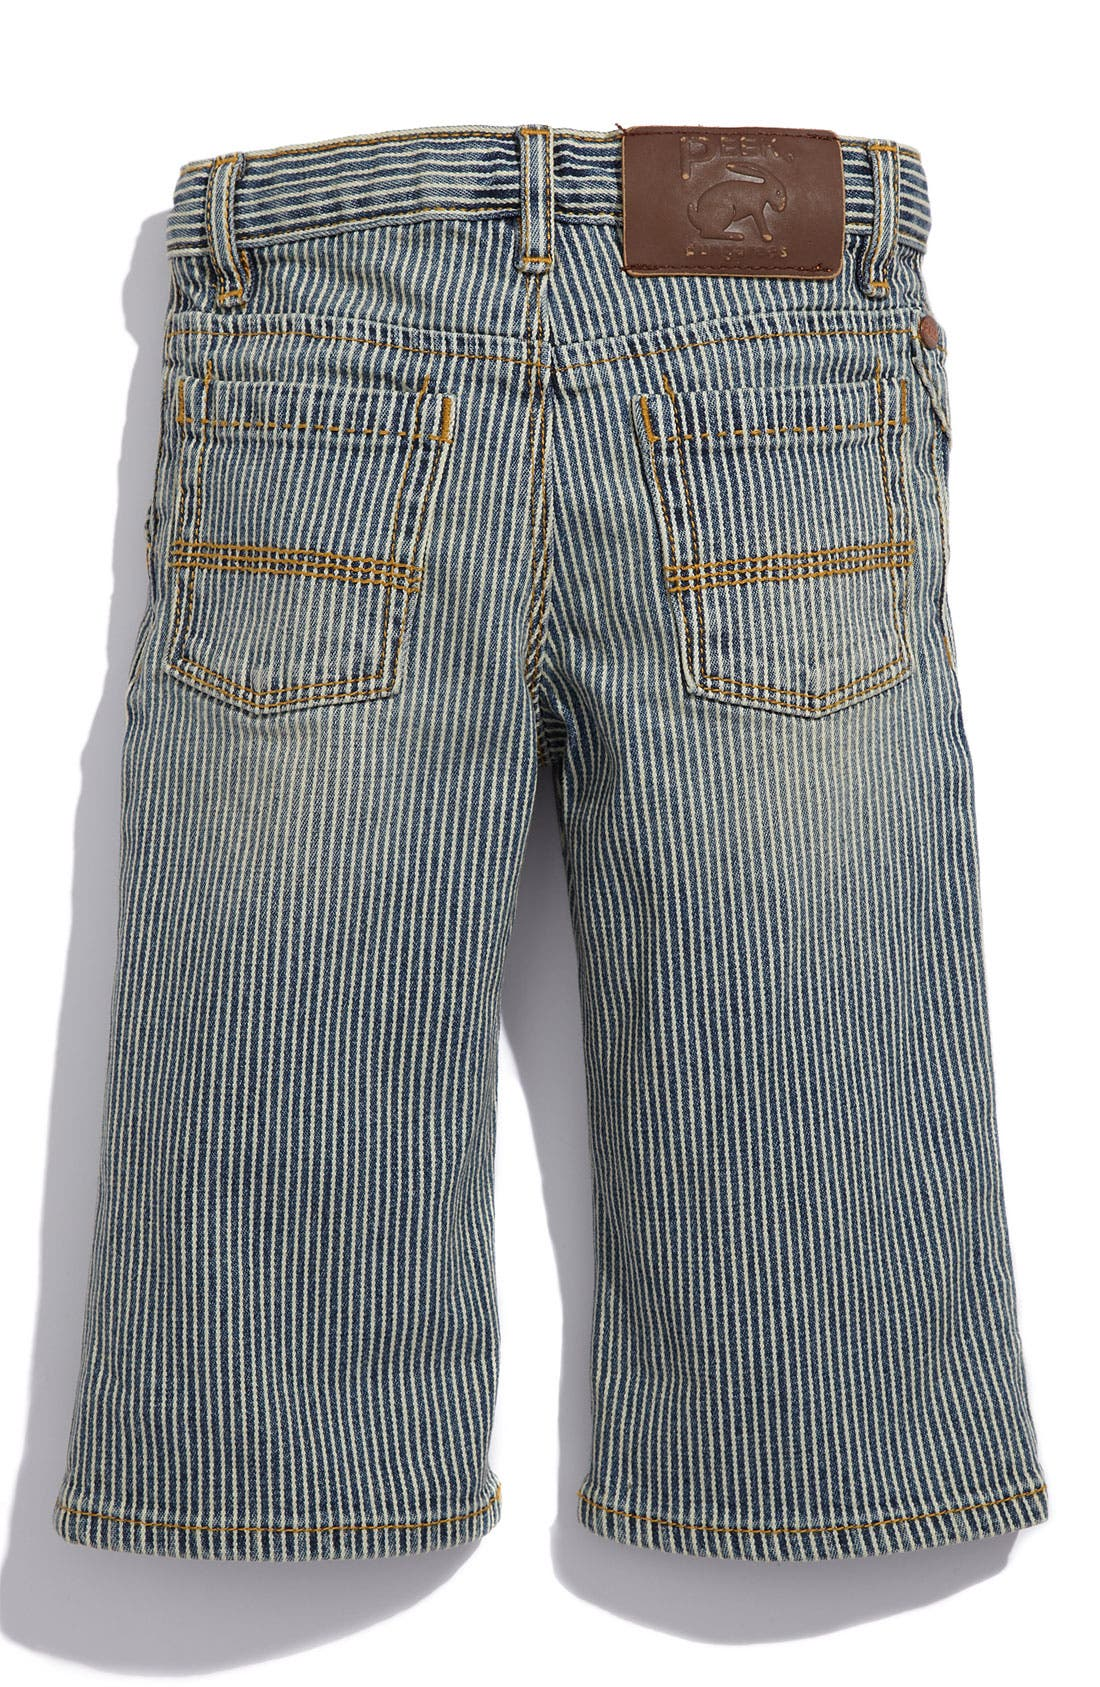 Alternate Image 1 Selected - Peek 'Big Peanut' Jeans (Infant)